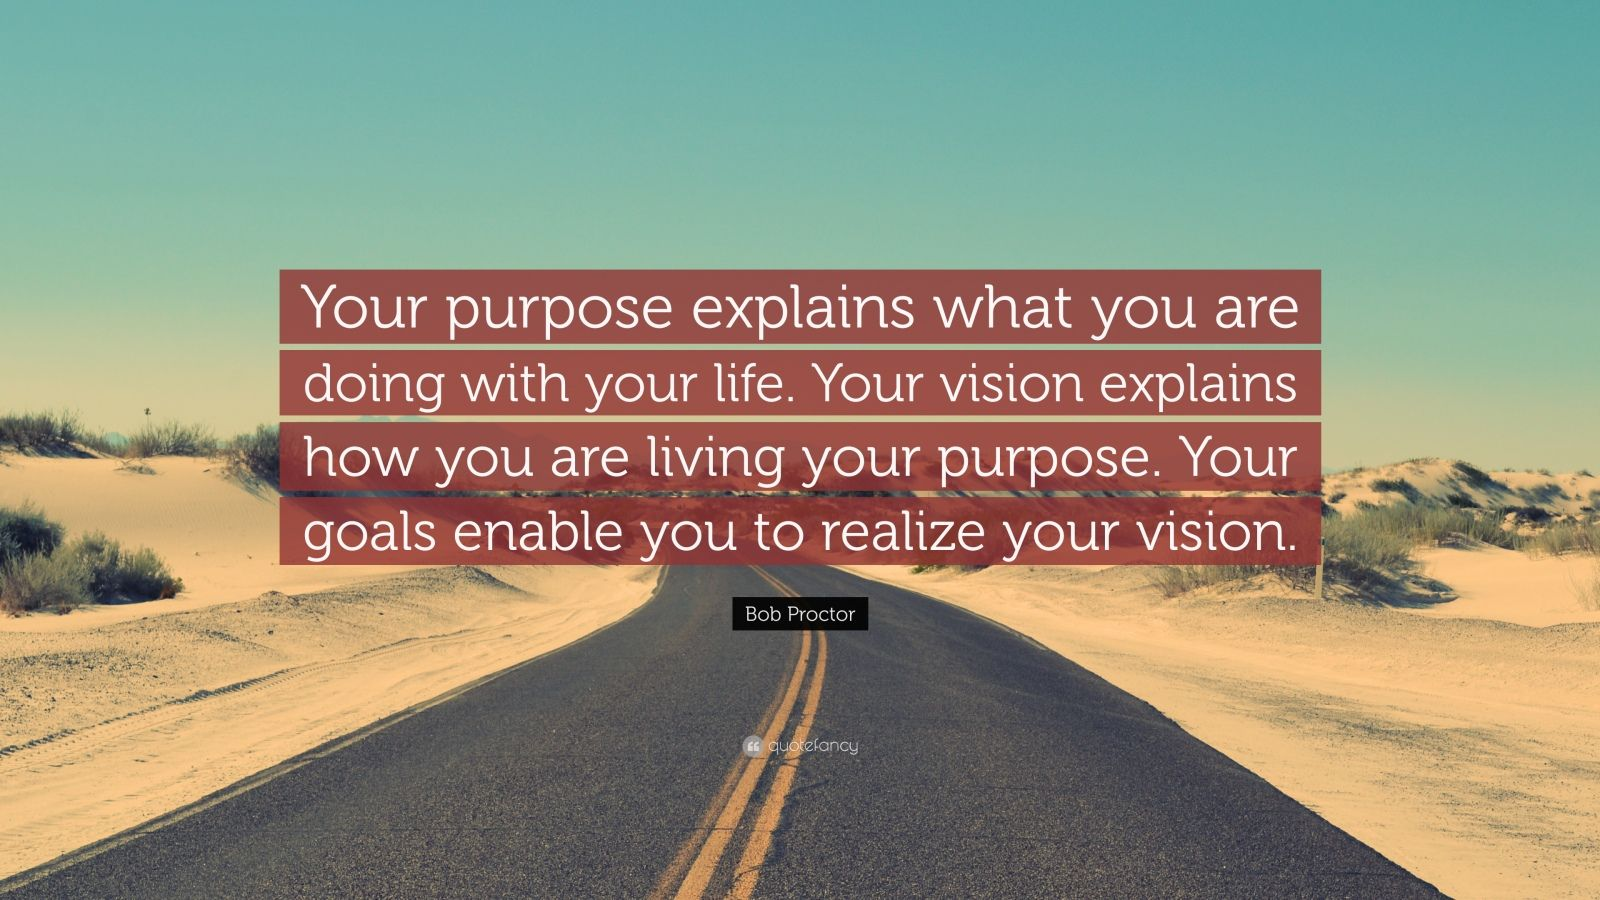 """Bob Proctor Quote: """"Your purpose explains what you are doing with your life. Your vision explains how you are living your purpose. Your goals enable you to realize your vision."""""""